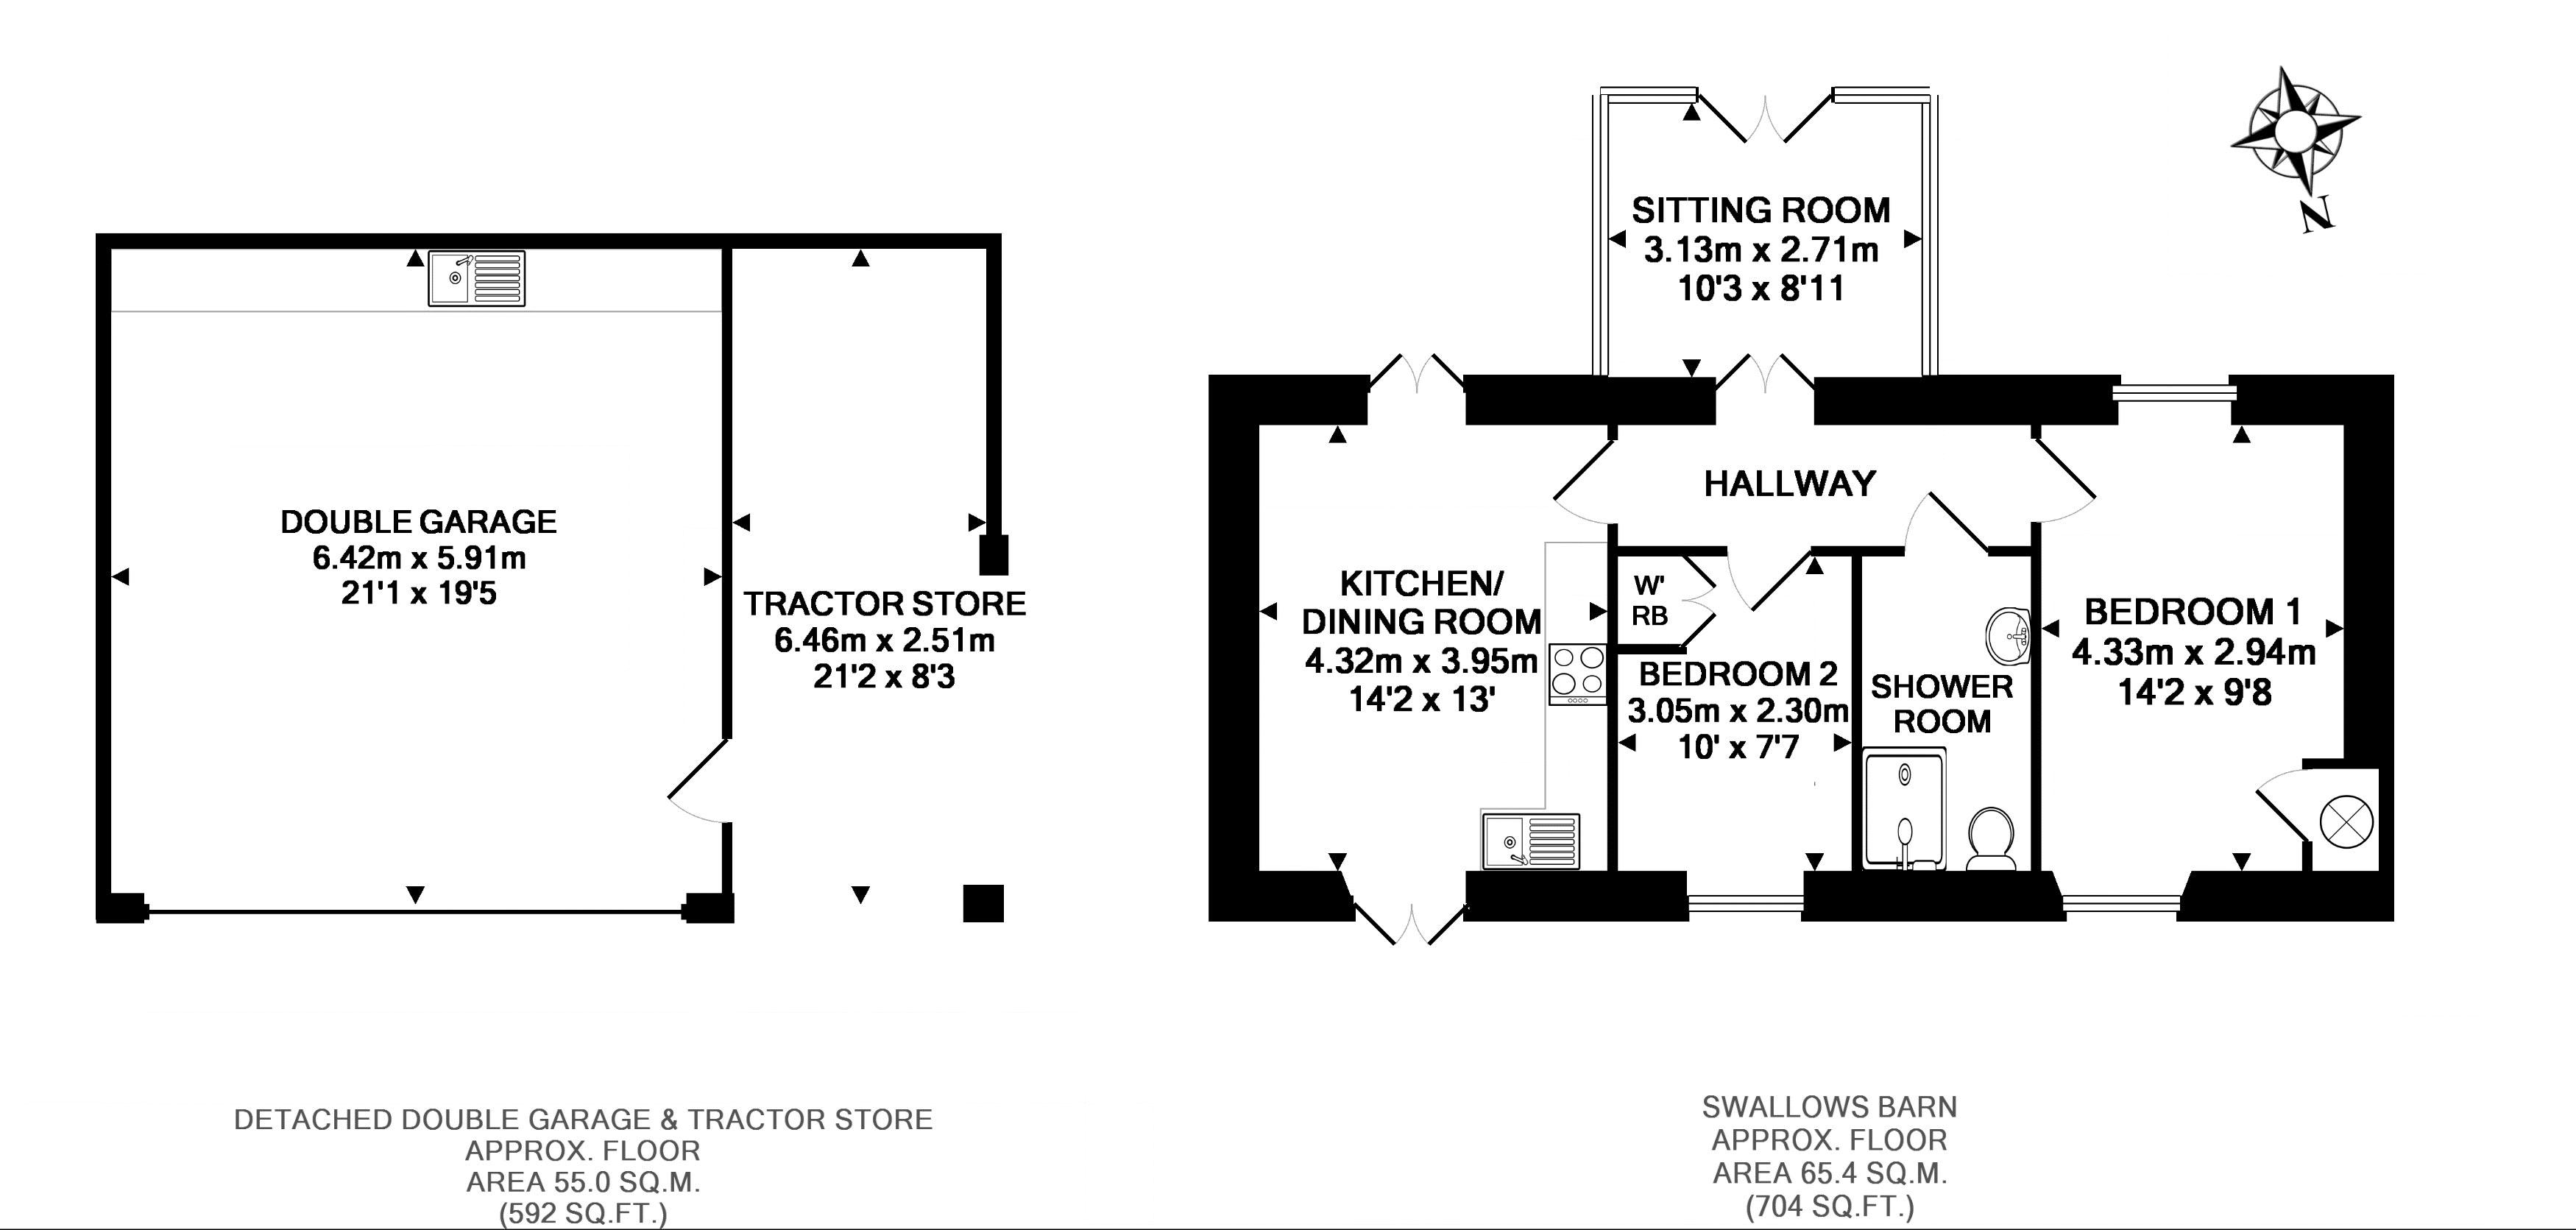 FLOORPLAN: Swallows Barn & Tractor Store